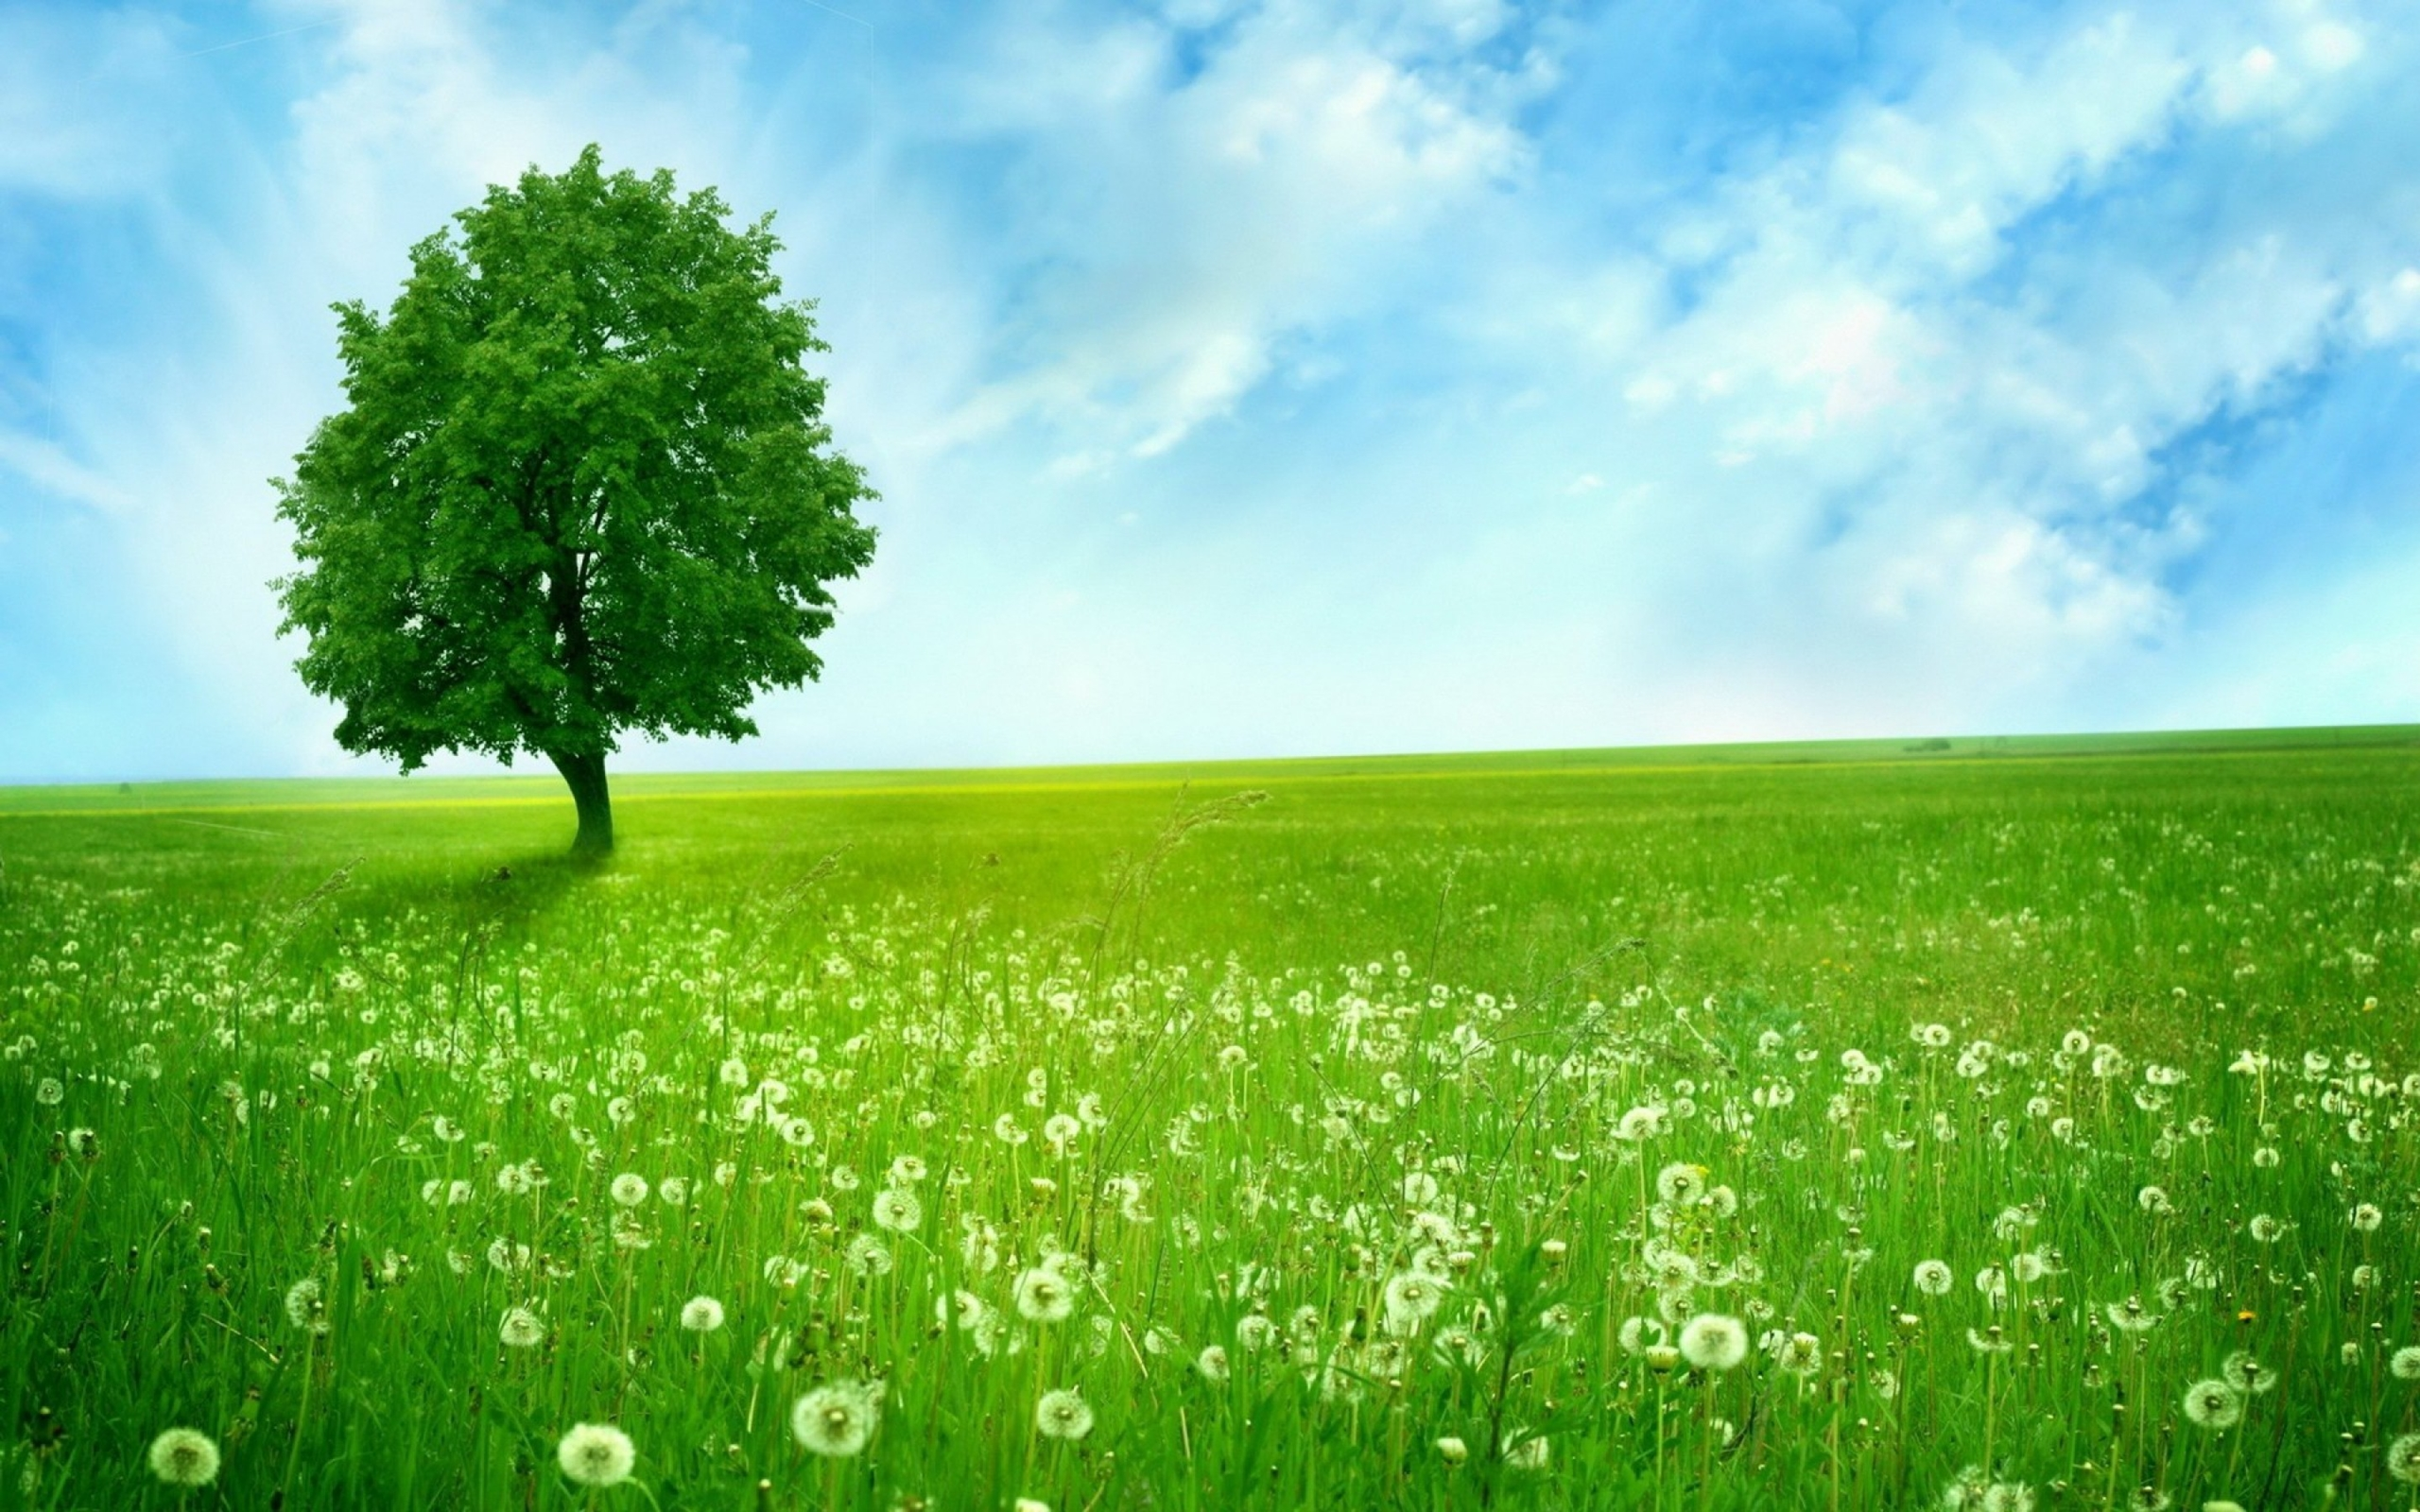 Natural Wood Meadow Grass Sky Hd Wallpaper : Wallpapers13 com